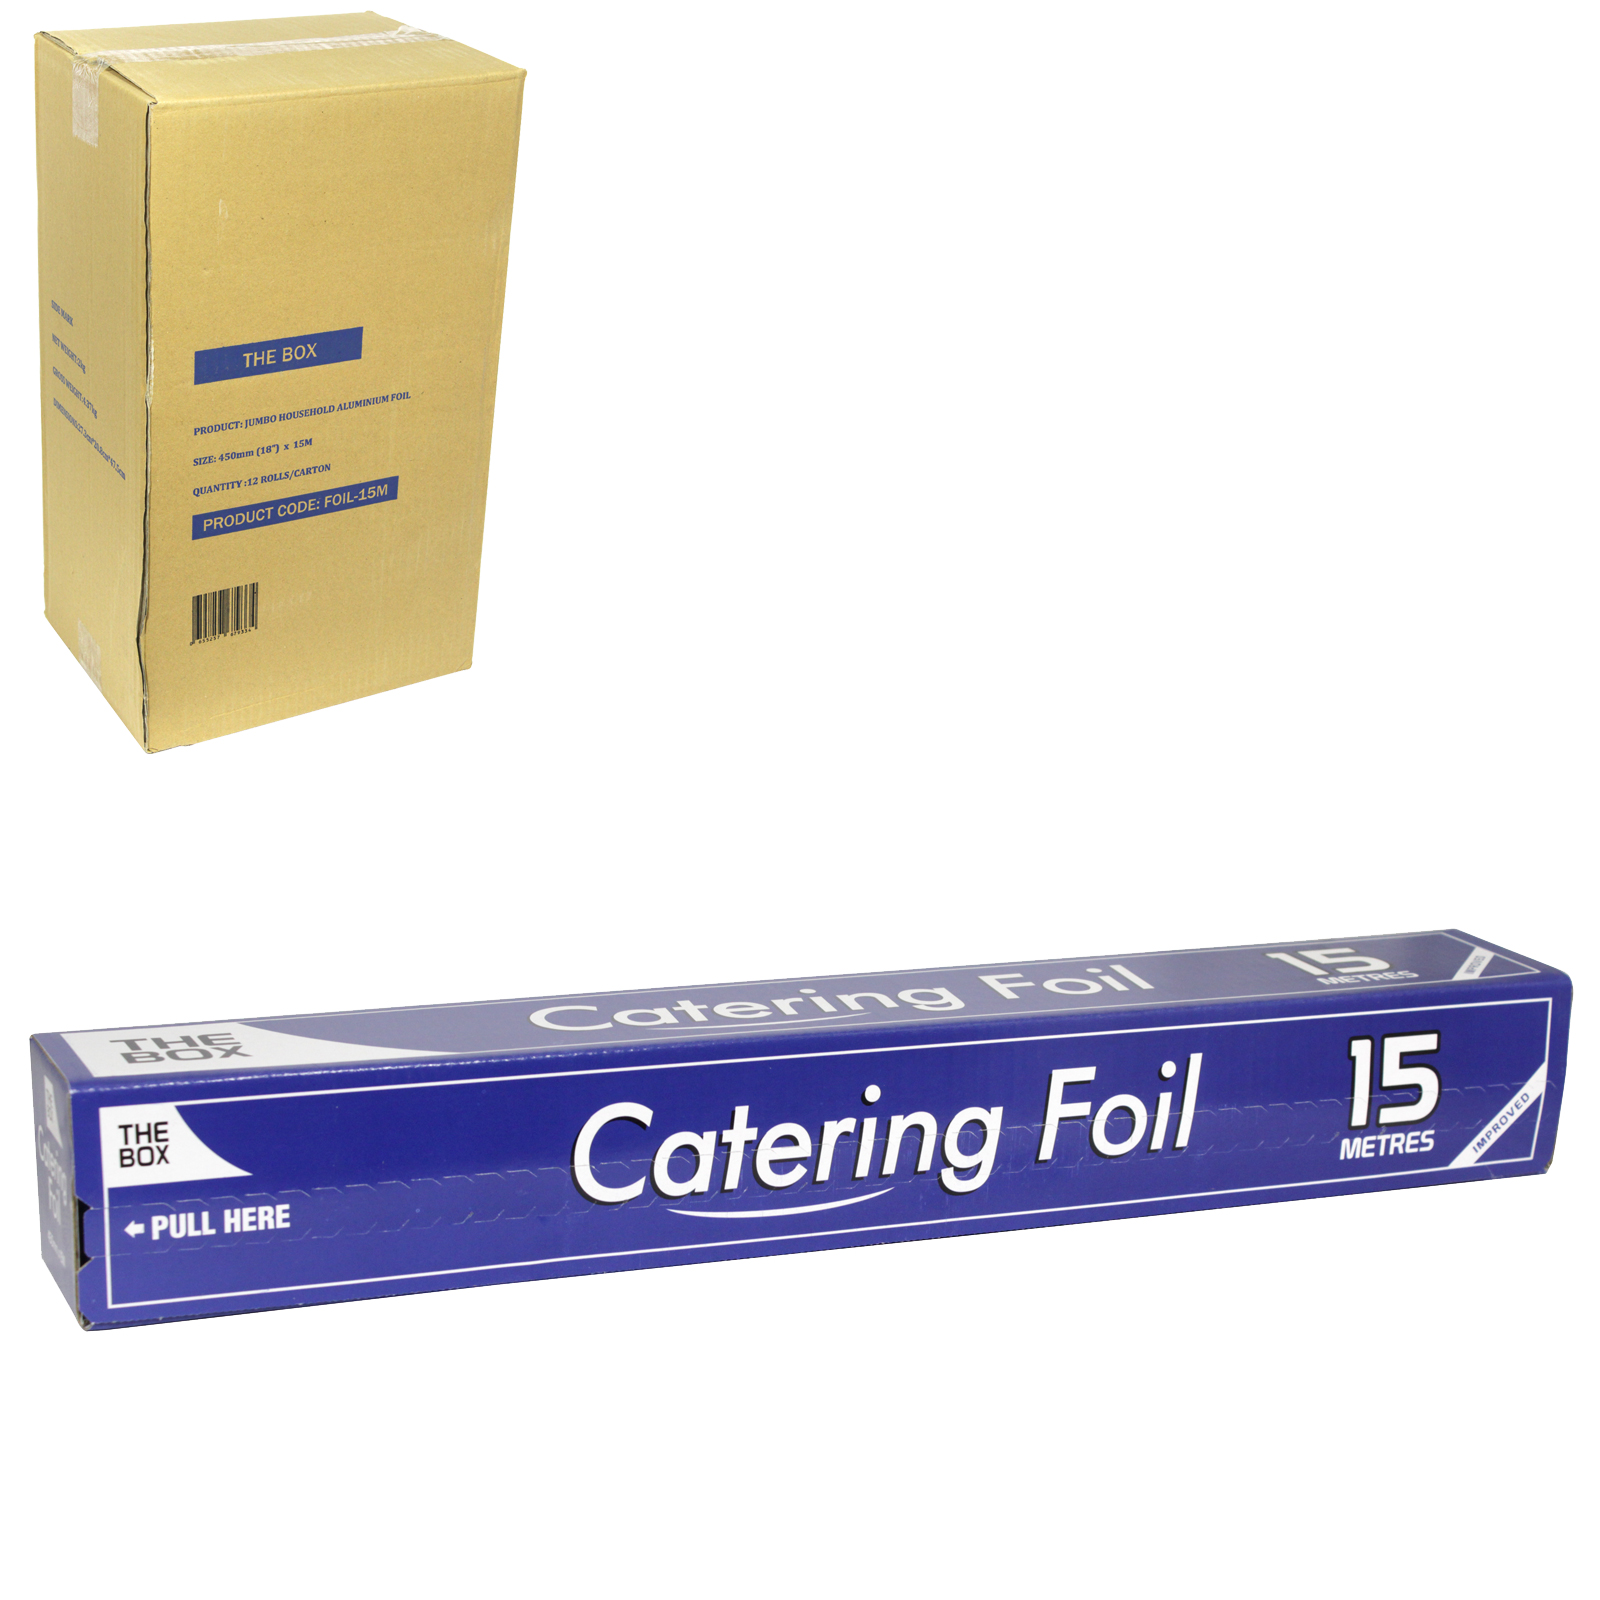 THE BOX CATERING FOIL 450MMX15M X12